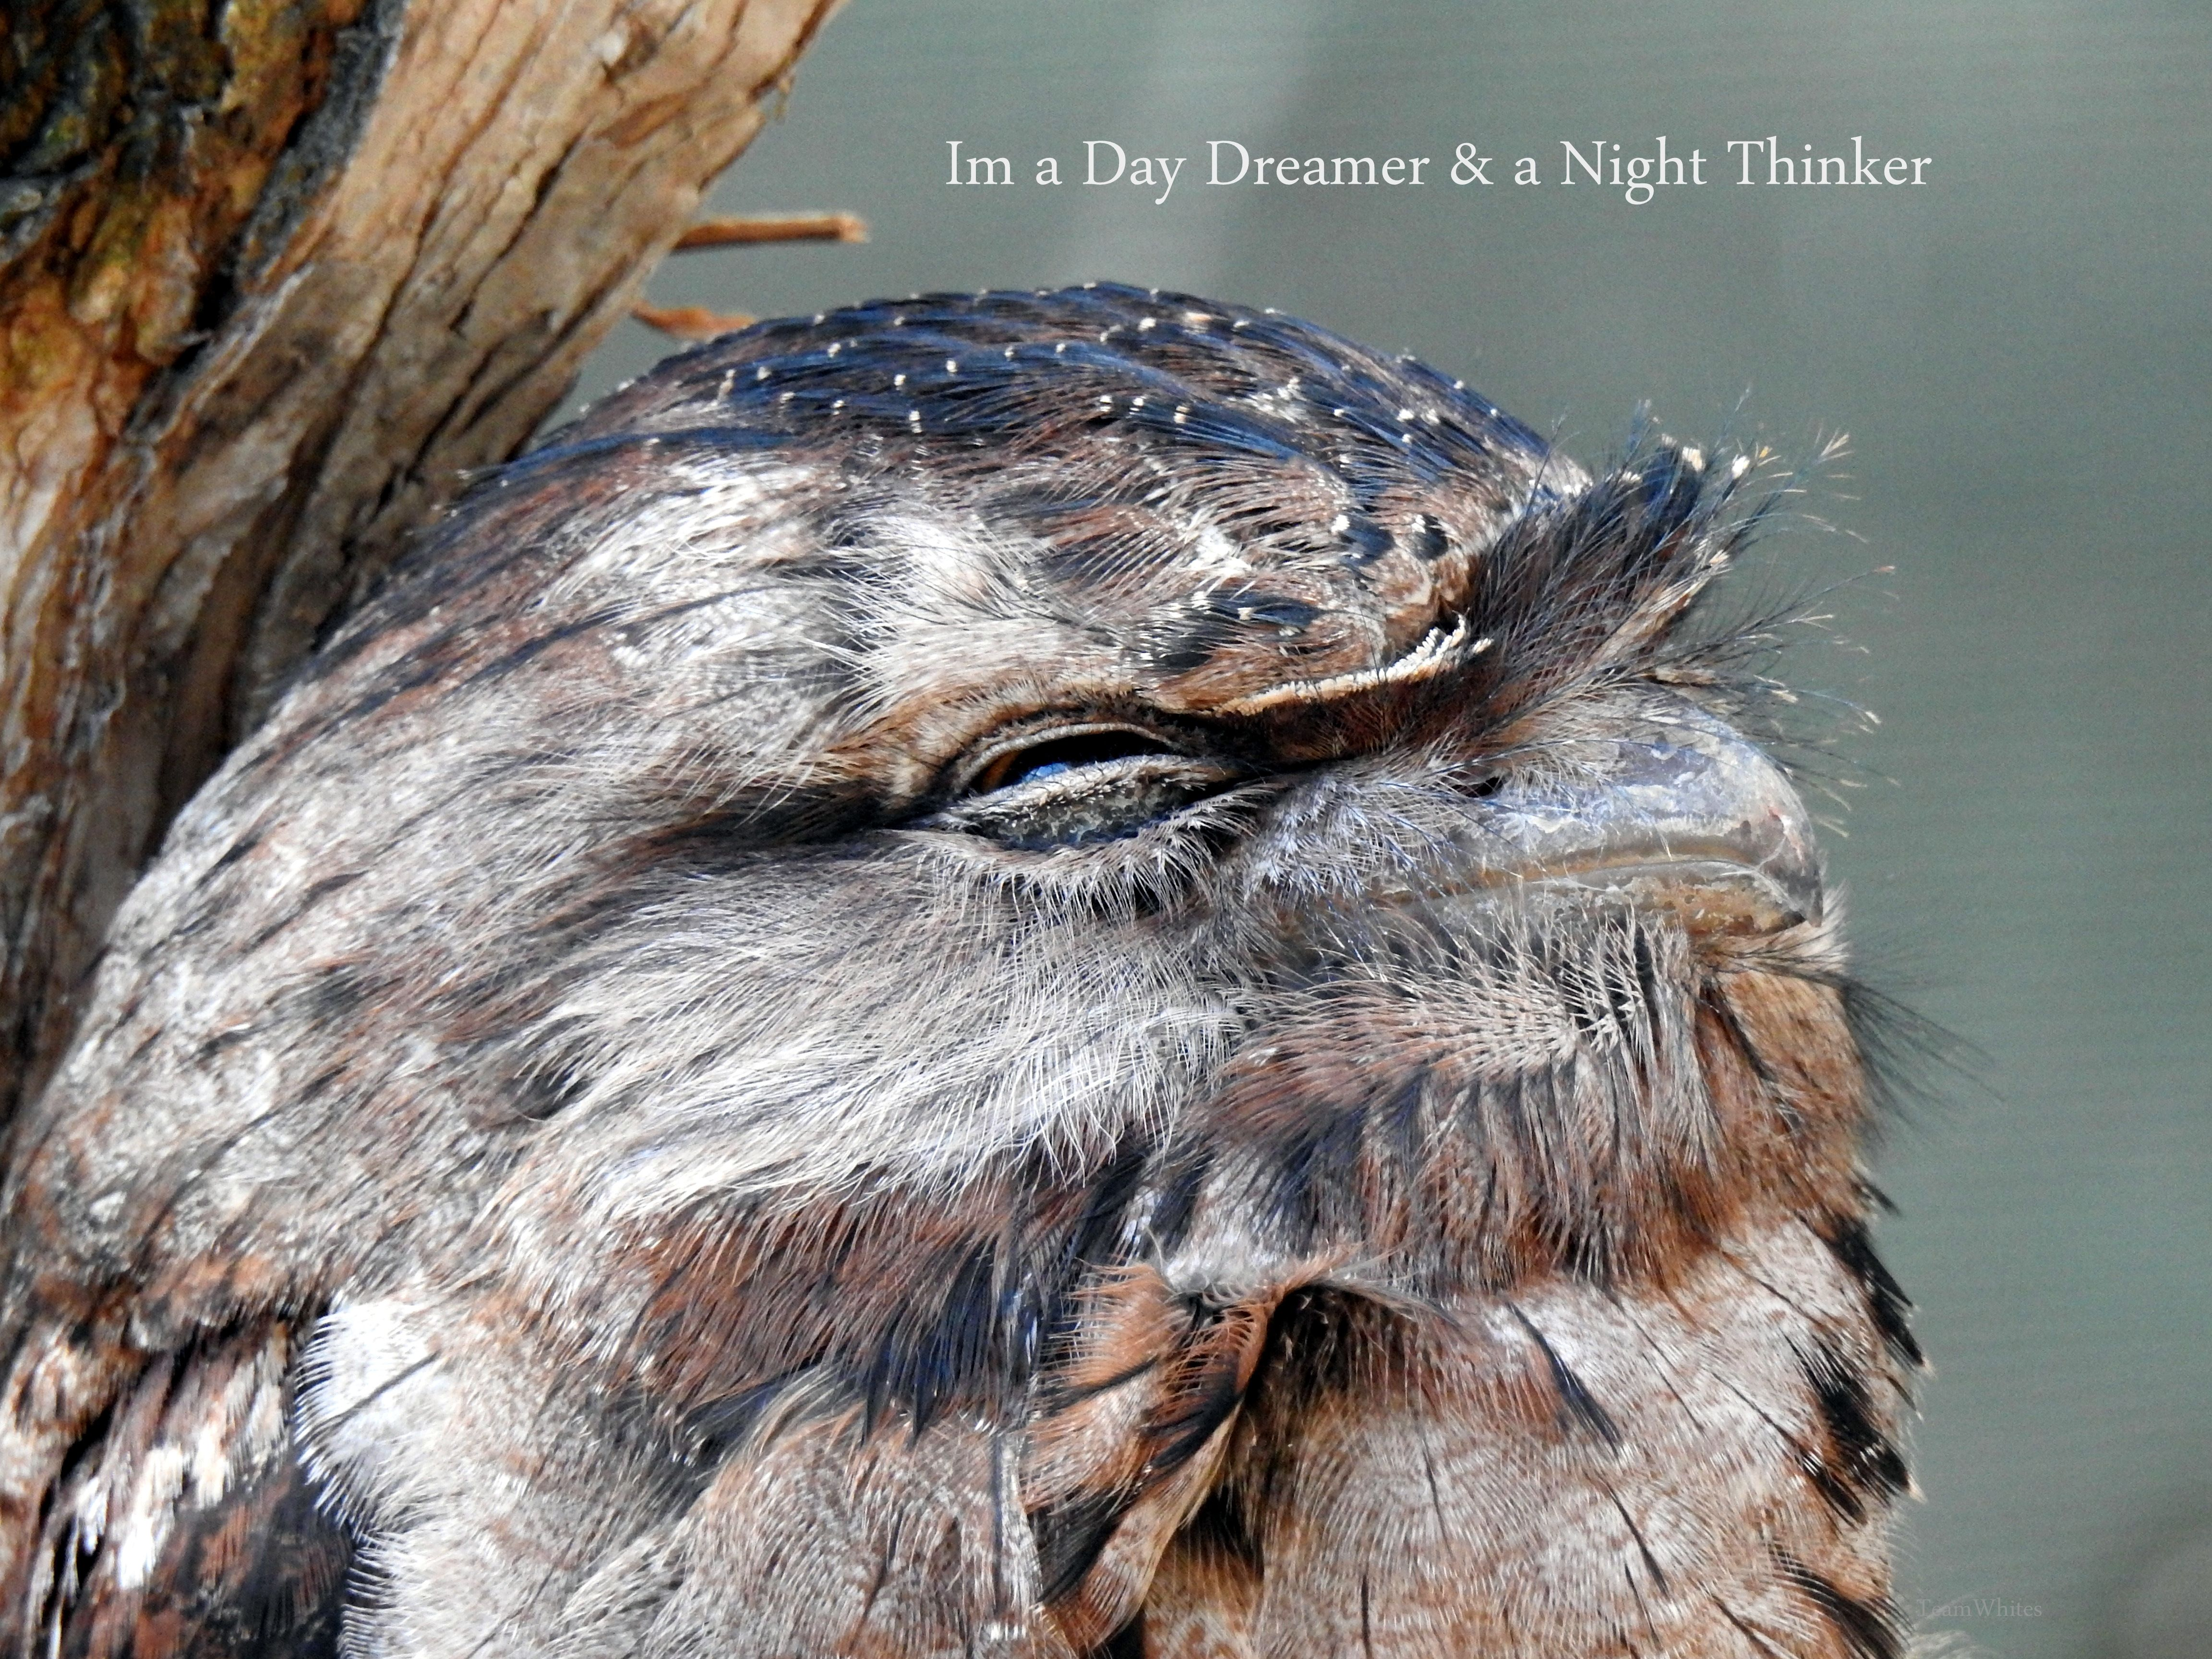 Quotes Day Dreamer Night Thinker Amature Photography Nikon